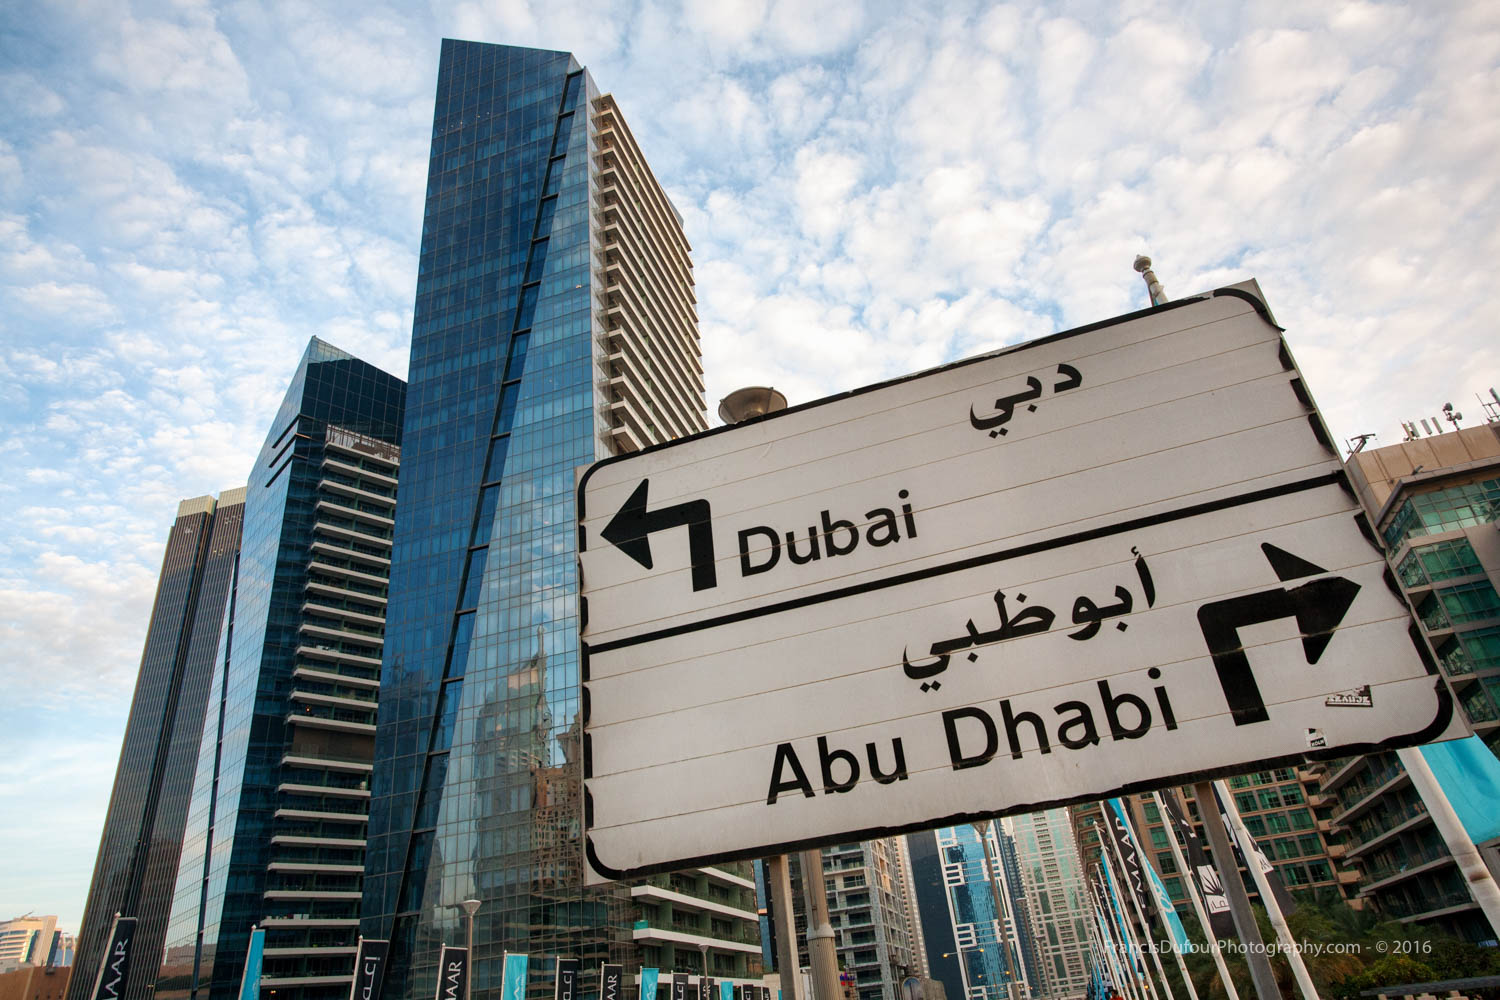 Road Sign in the Marina (Dubai, UAE)